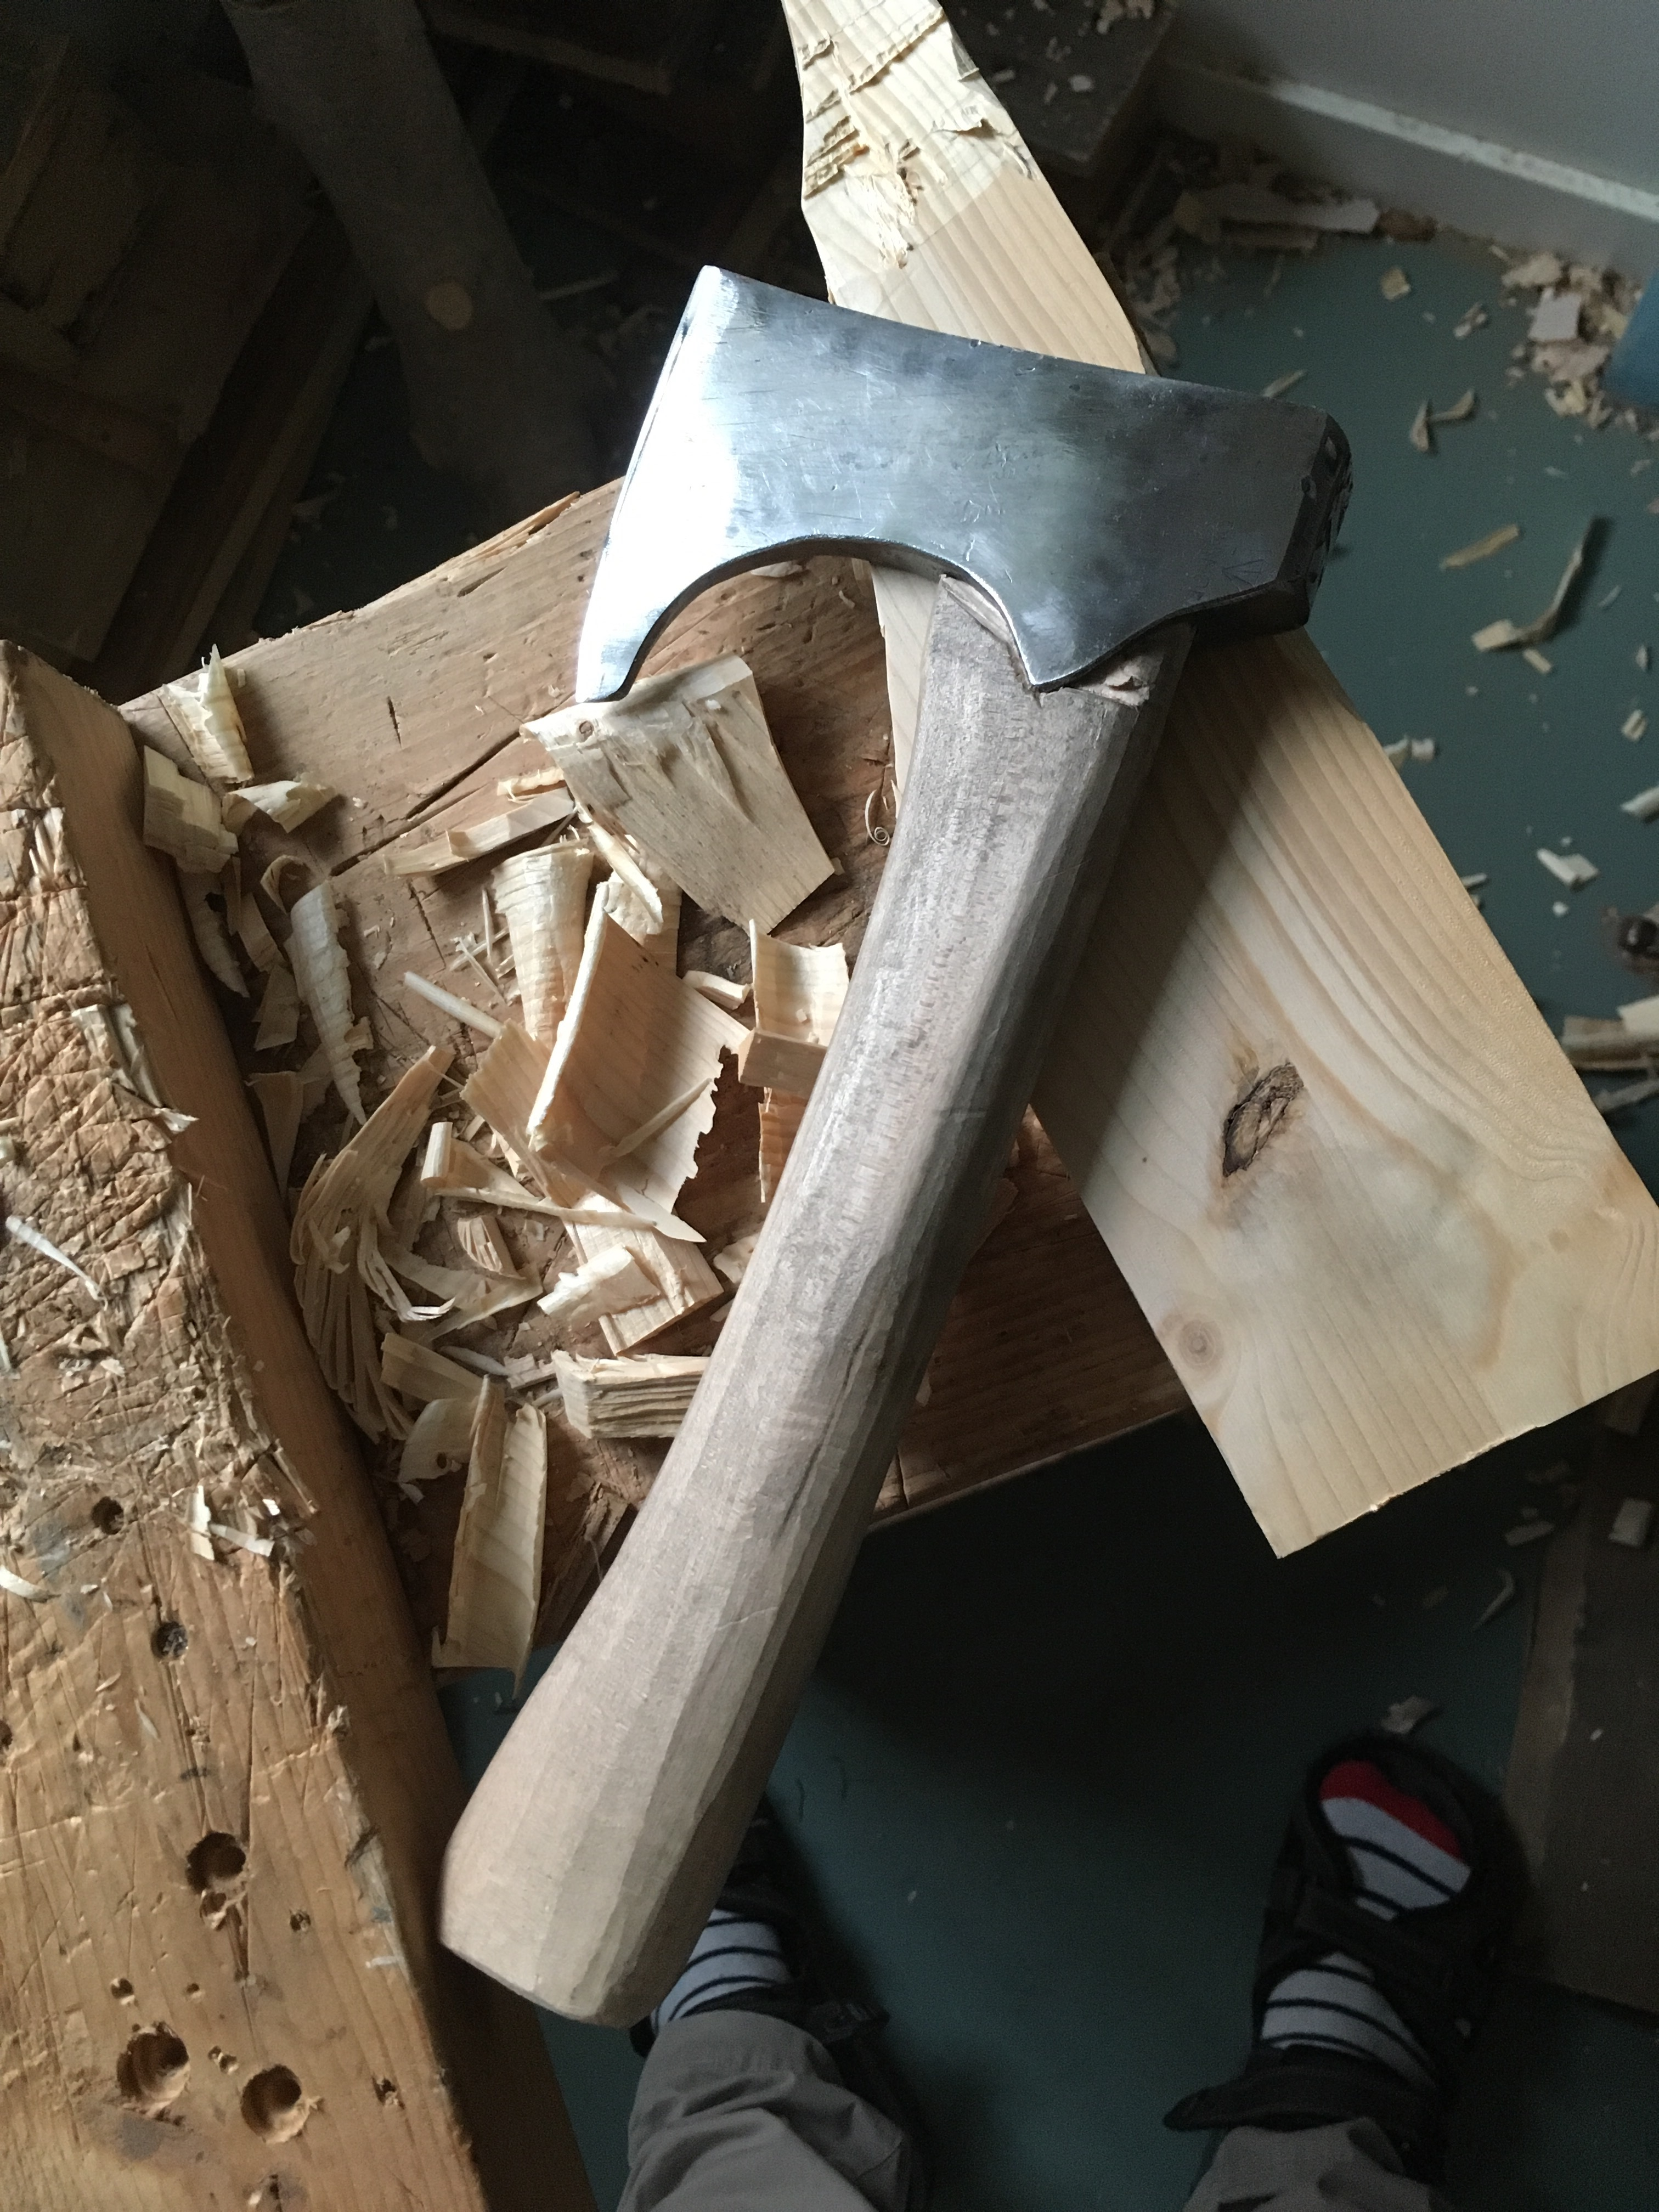 How to Make a Viking Style Axe From an Old Rusty Axe - No Forging